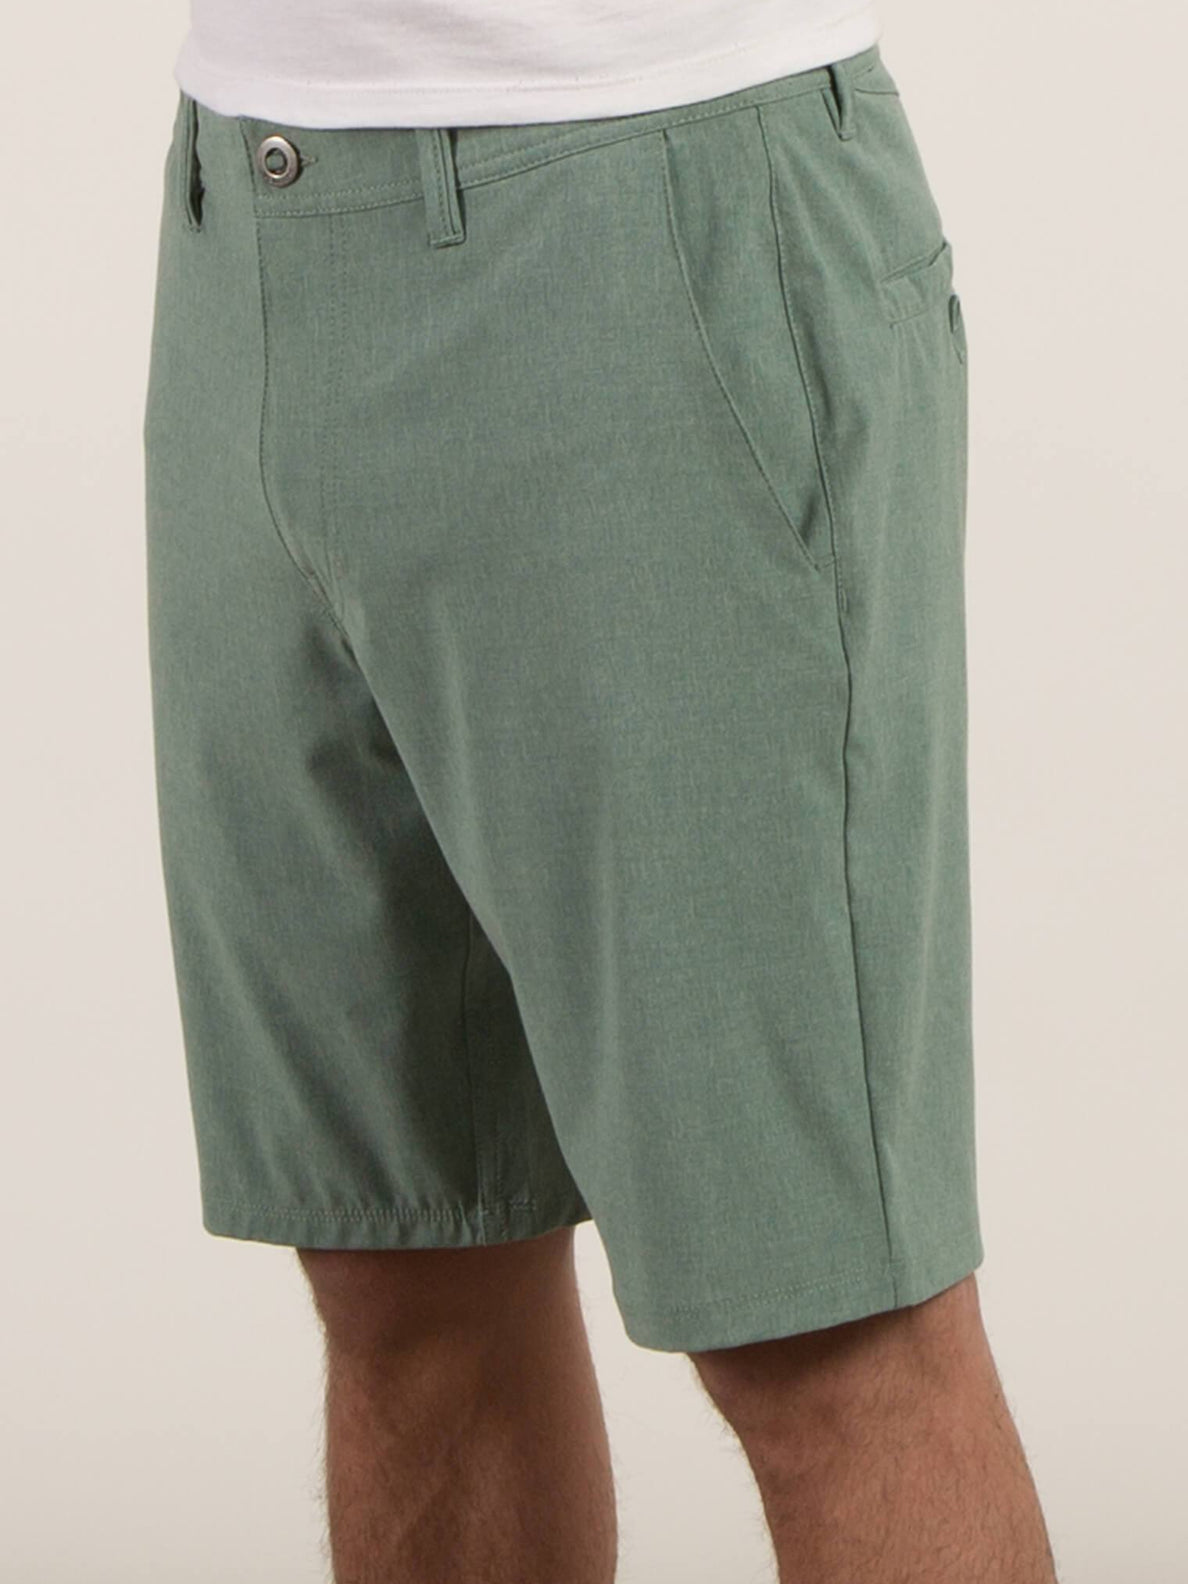 Surf N' Turf Frickin Static Hybrid Shorts - Sea Green